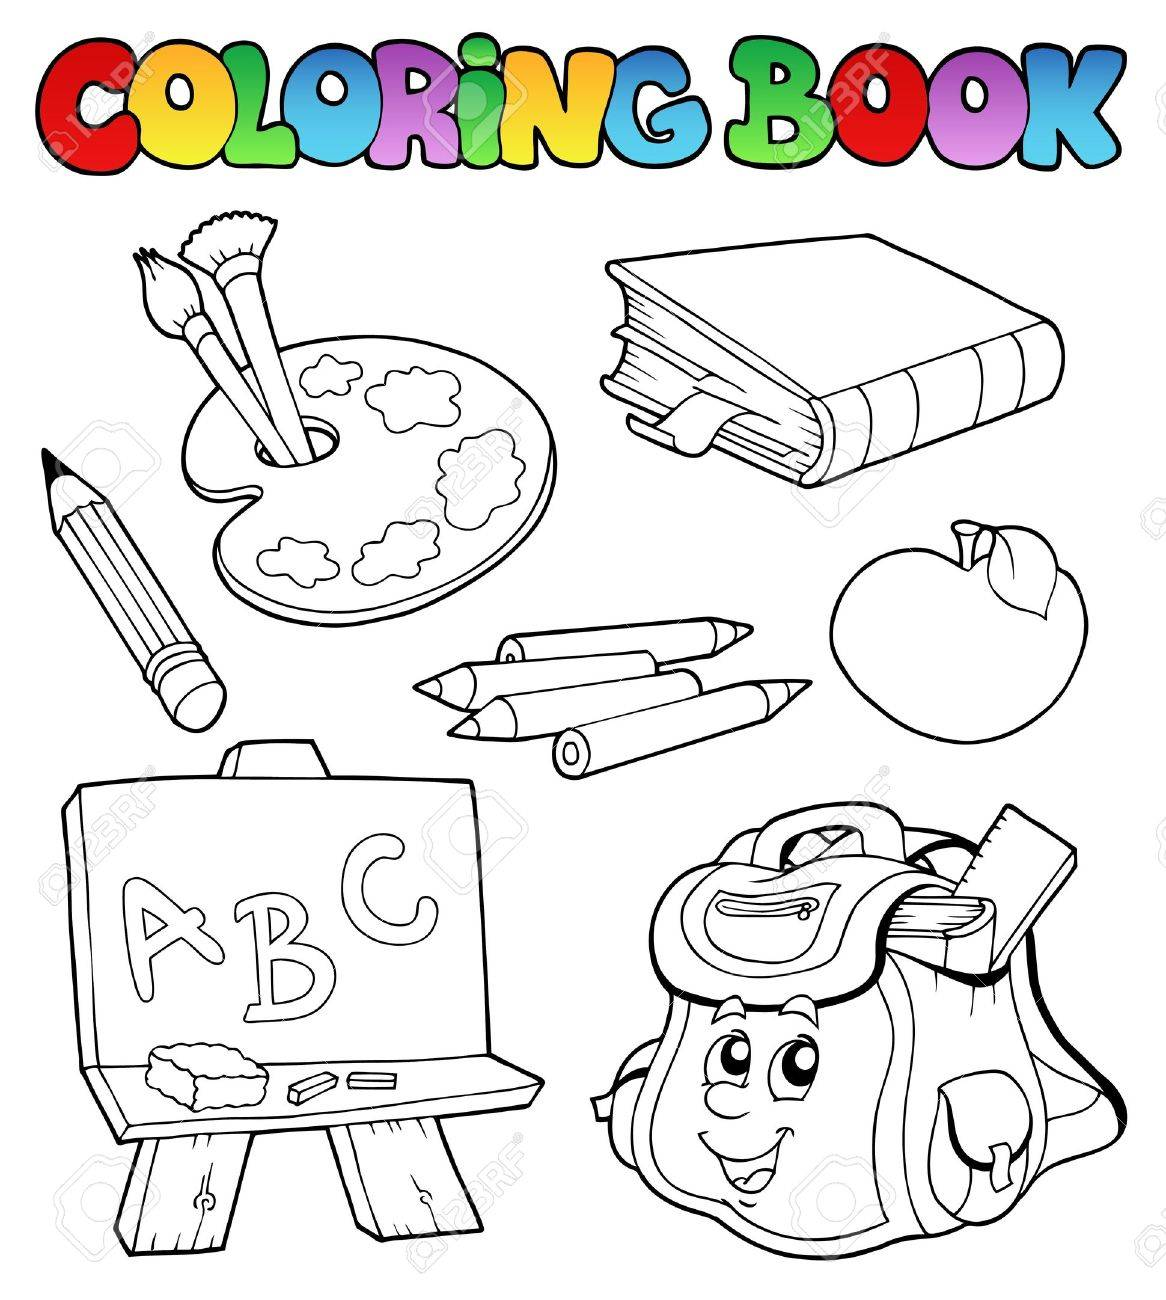 Coloring book school - Coloring Book With School Images Illustration Stock Vector 8350131